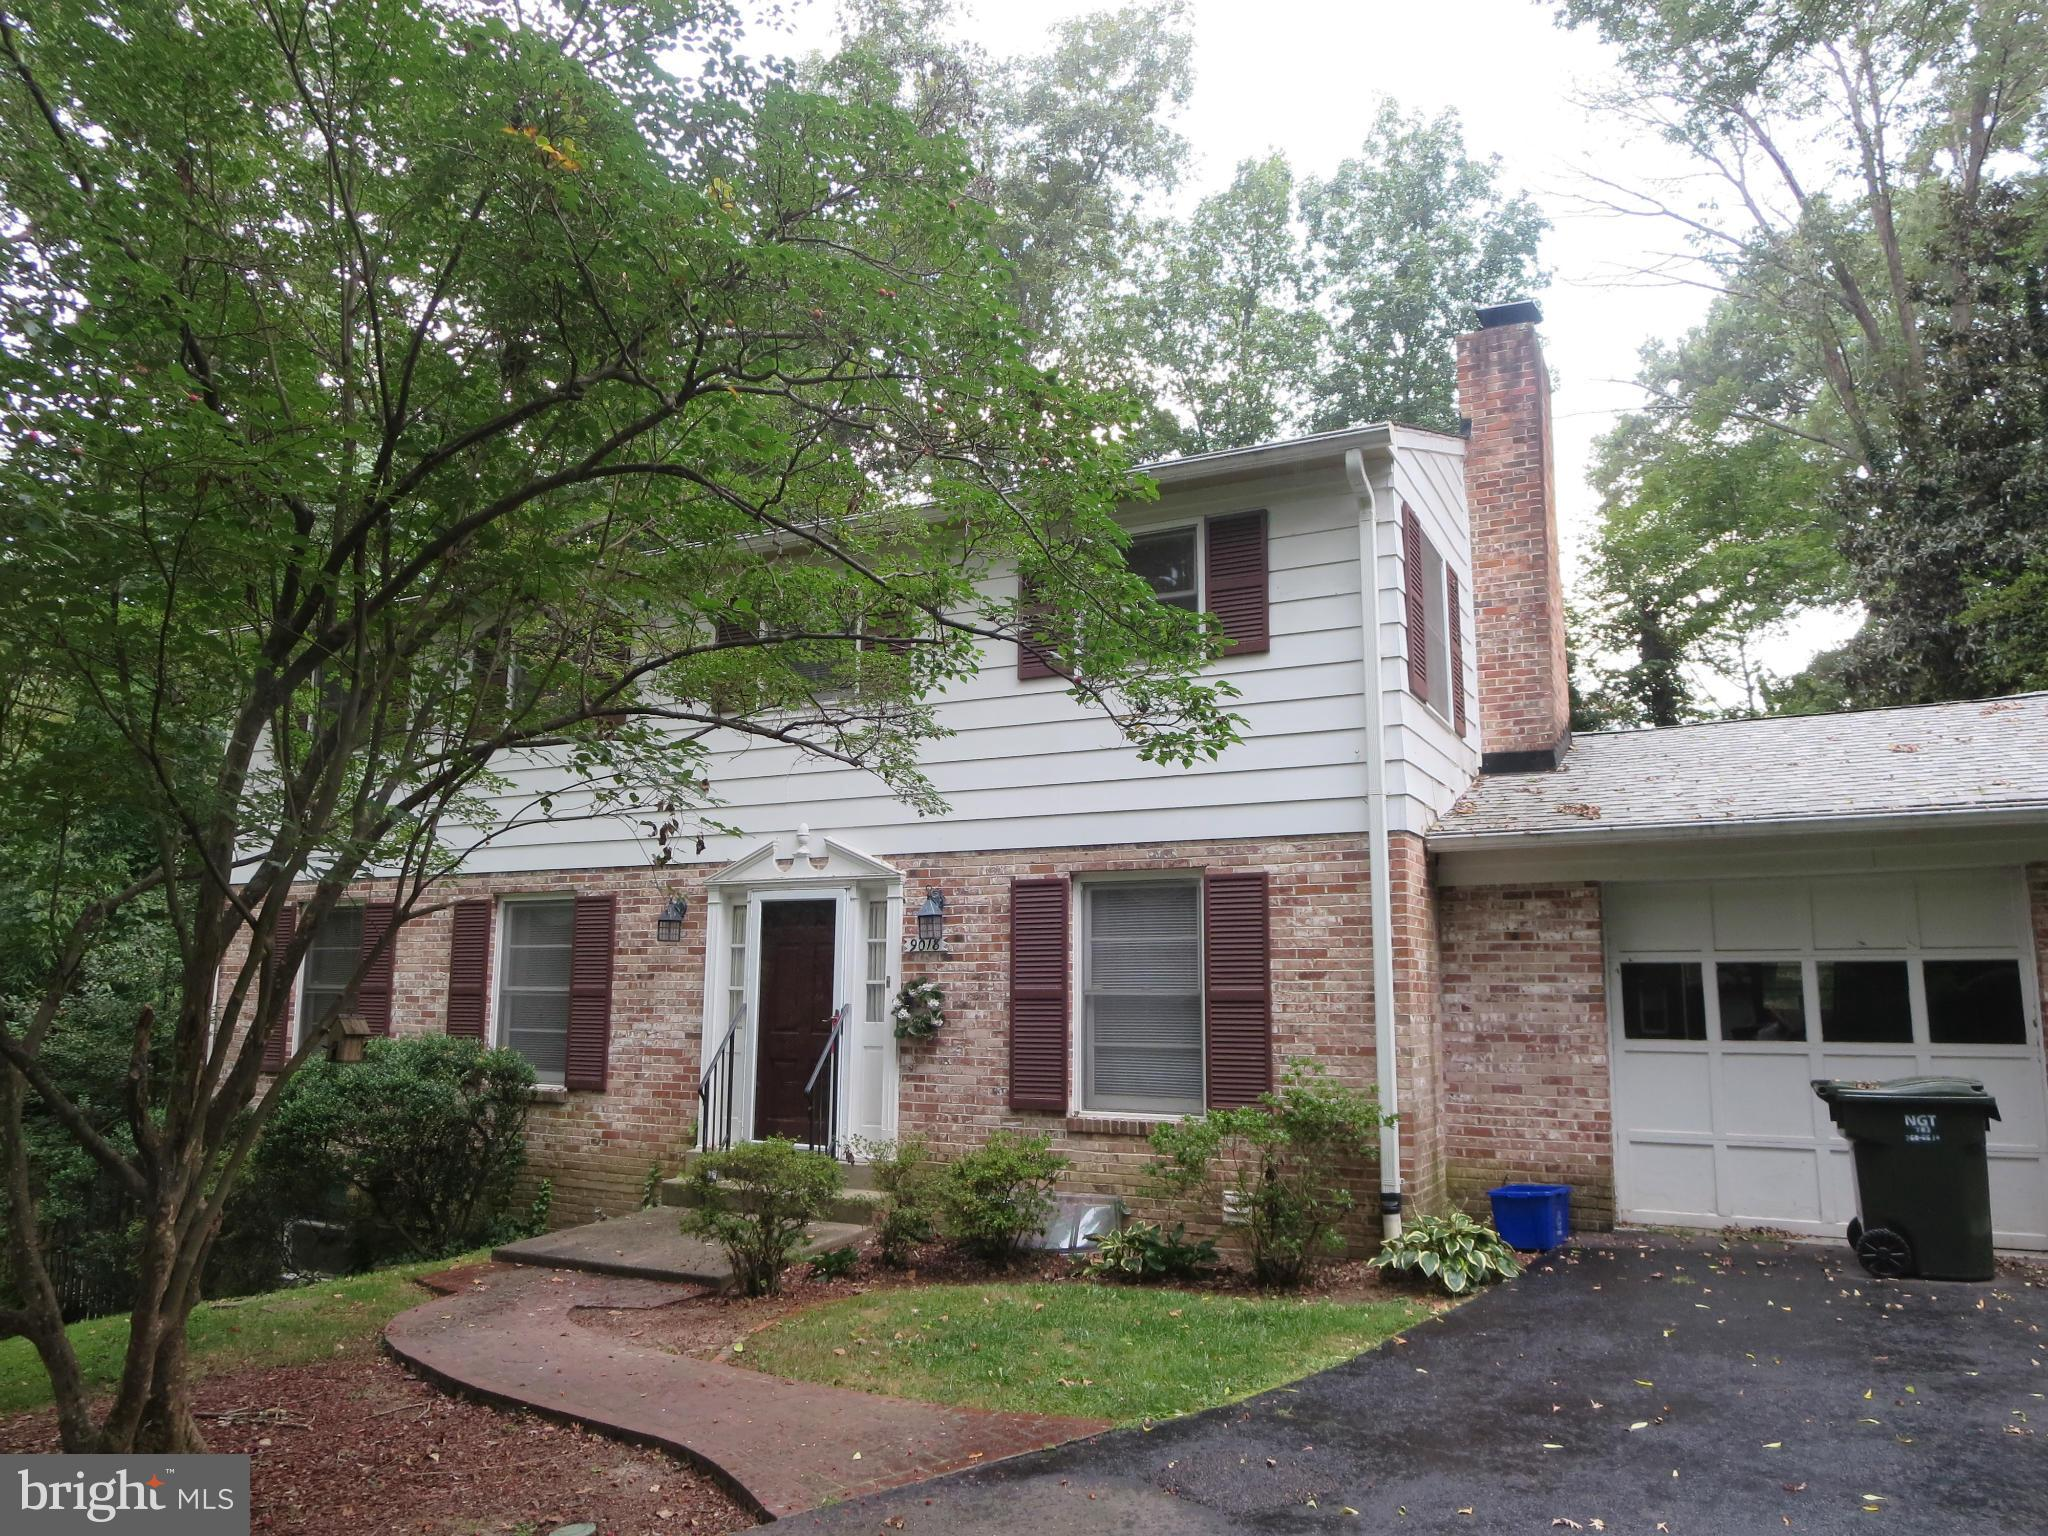 Charming 5 bdrm, 3  bath home minutes from Ft. Belvior and scenic George Washington Parkway! Hardwood on main and upper levels, formal living room, family room and separate dining room on main level. Fully equipped kitchen with stainless appliances and granite counters.  Master bedroom with full bath has separate shower and soaking tub! Lower level rec. room, bedroom & laundry. French doors to back yard and patio!! 1 car attached garage!